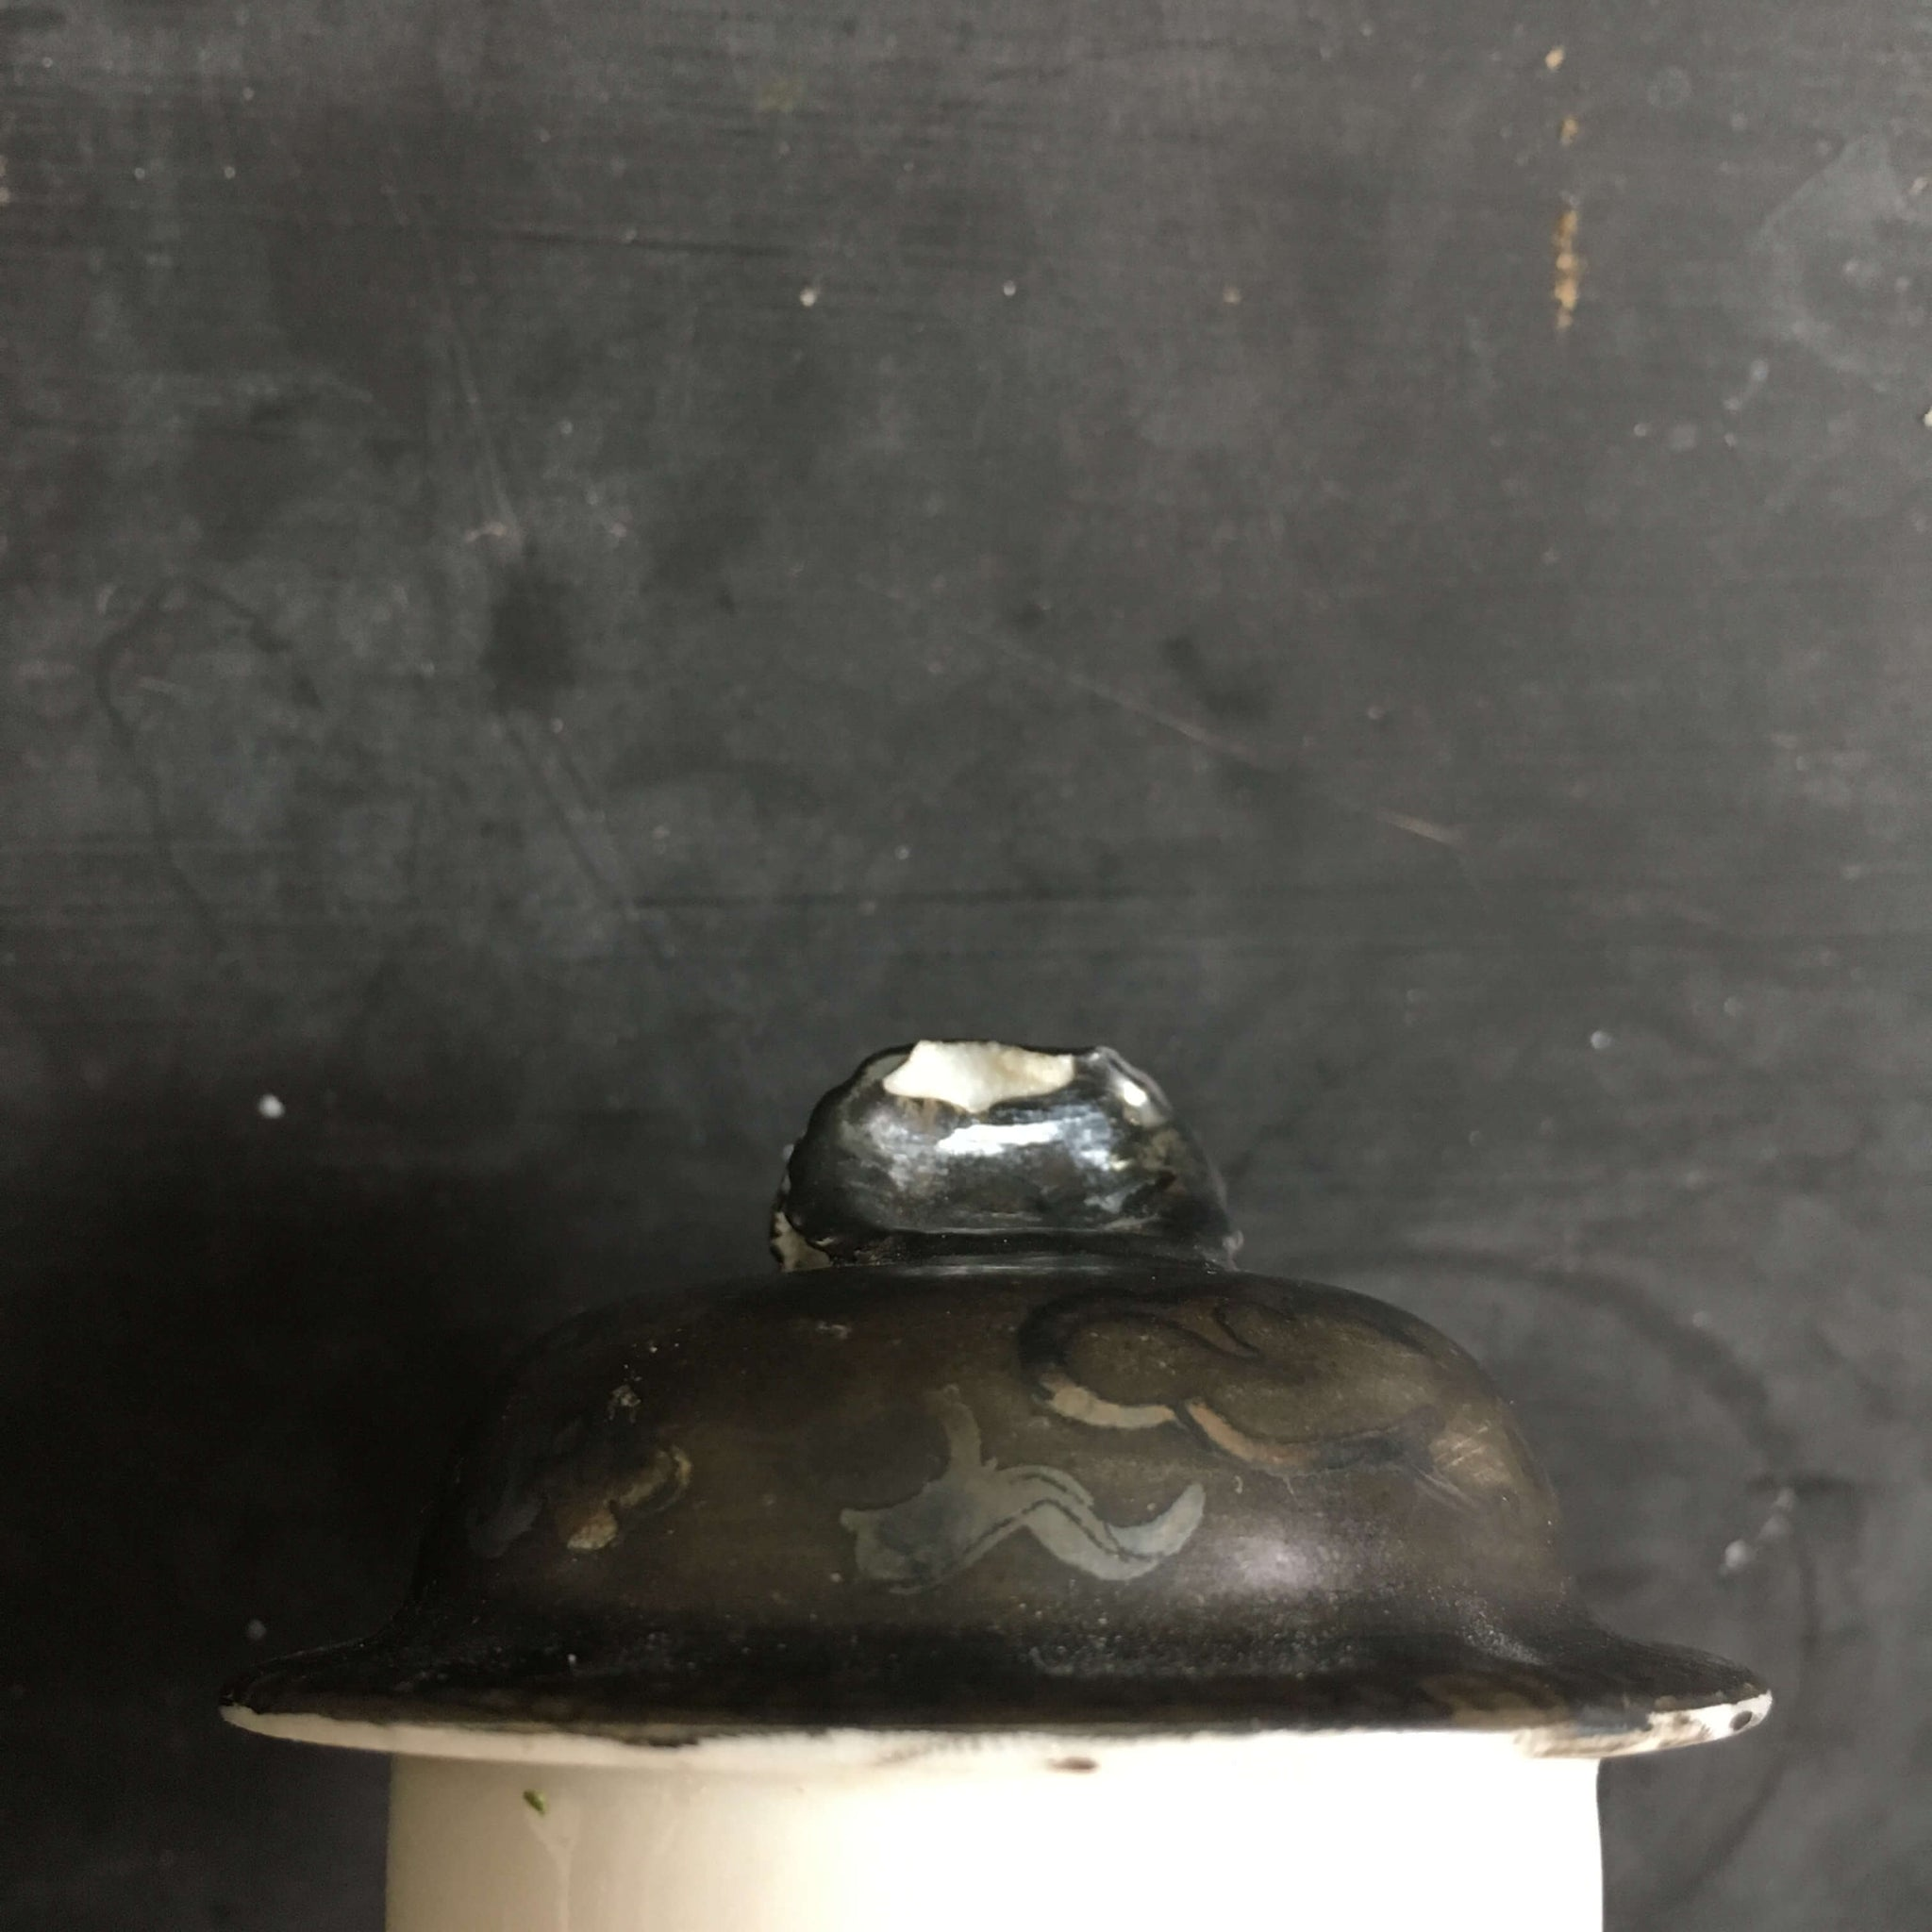 Rare Black Nippon Sugar Bowl with Dragon Pattern - Handpainted Porcelain Dragonware circa 1920's/1930's